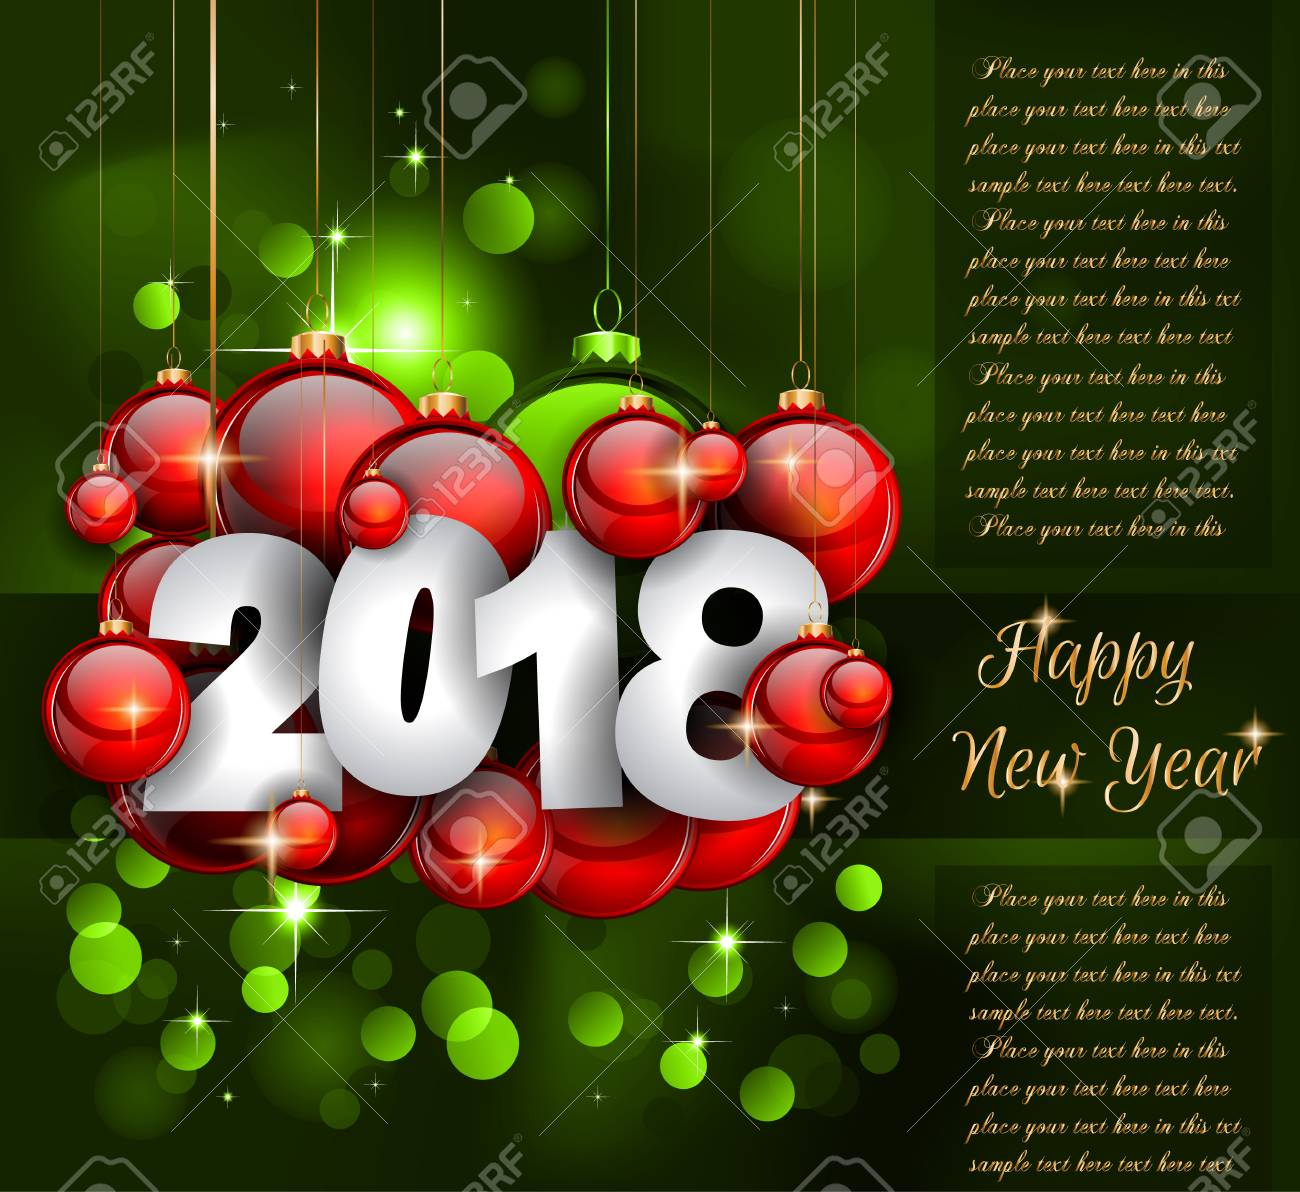 2018 happy new year greetings card or christmas themed invitations stock vector 88698735